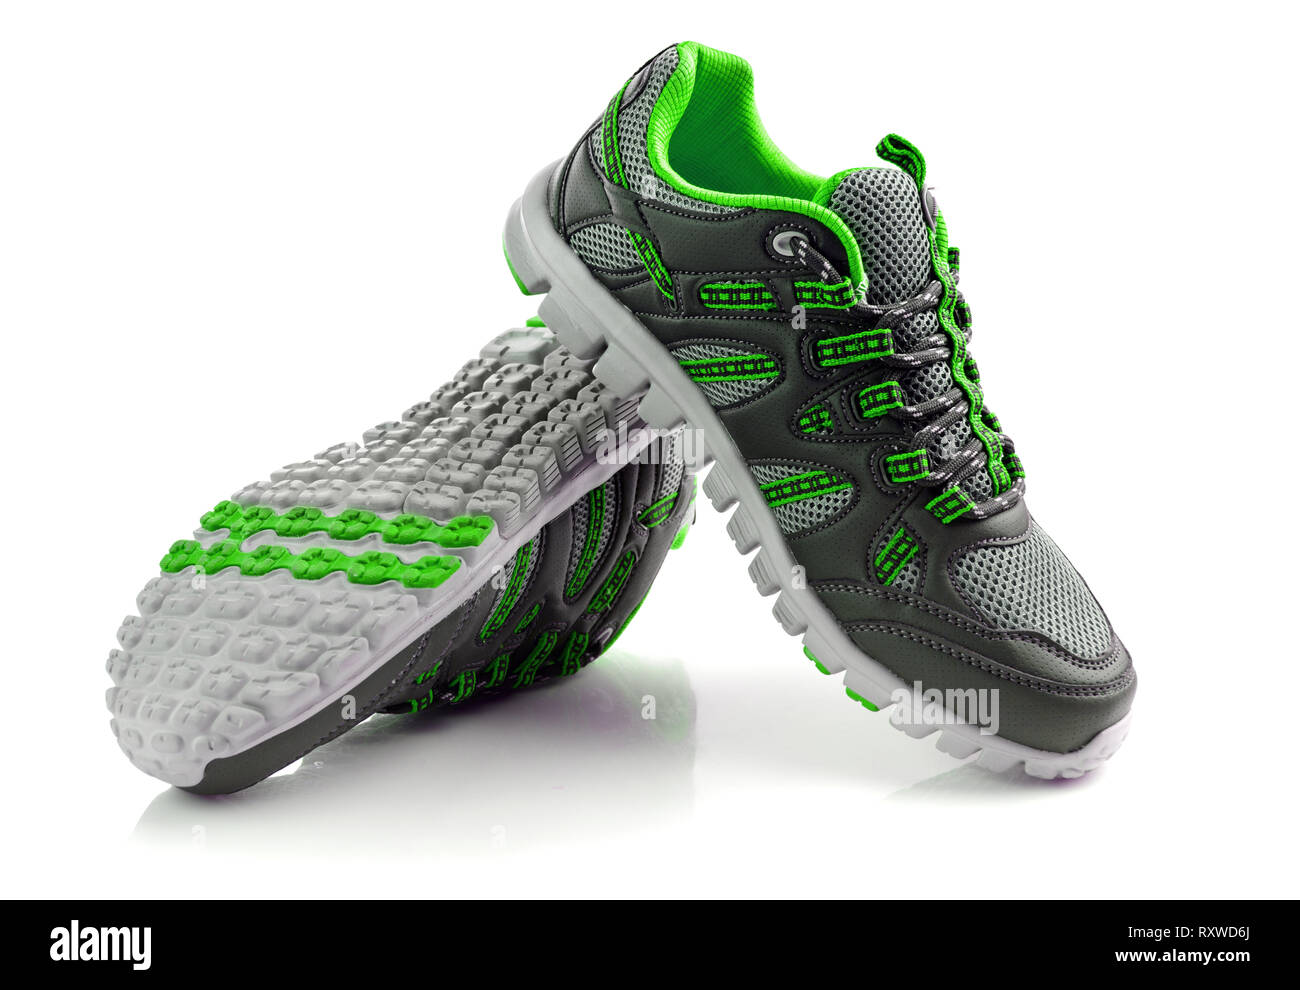 Unbranded modern sneakers sport shoes isolated - Stock Image